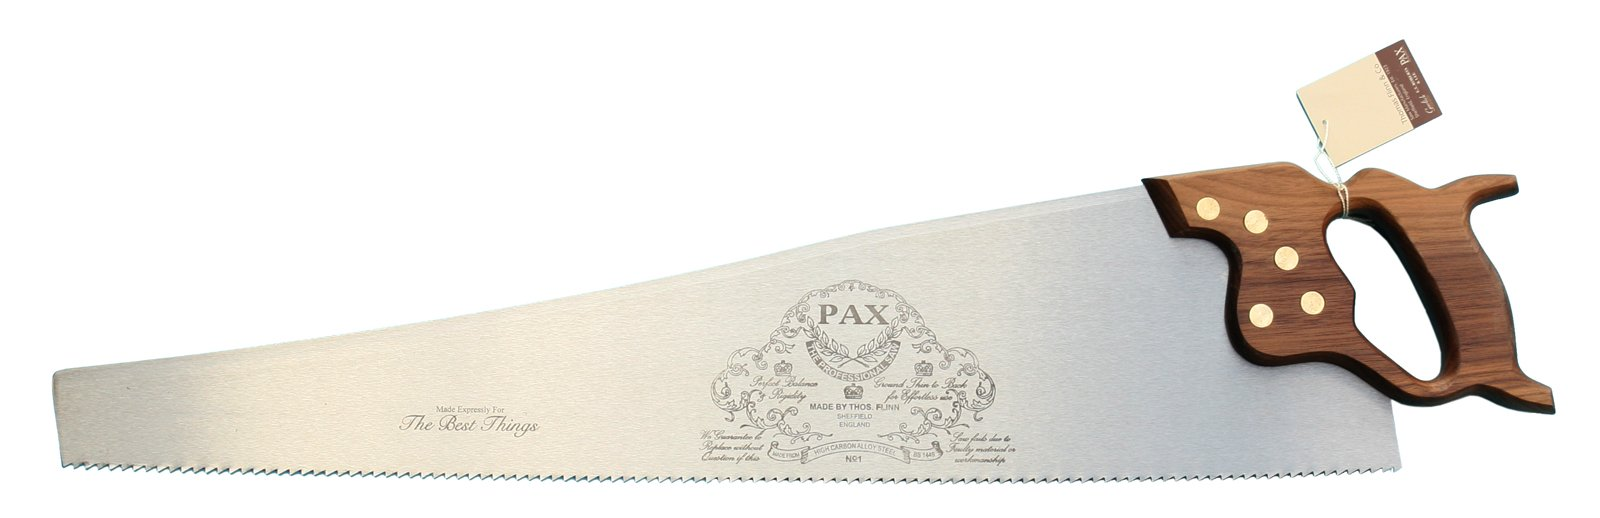 Thomas Flinn PAX 26'' Walnut Handled Rip Saw 4.5 tpi by The Best Things by PAX